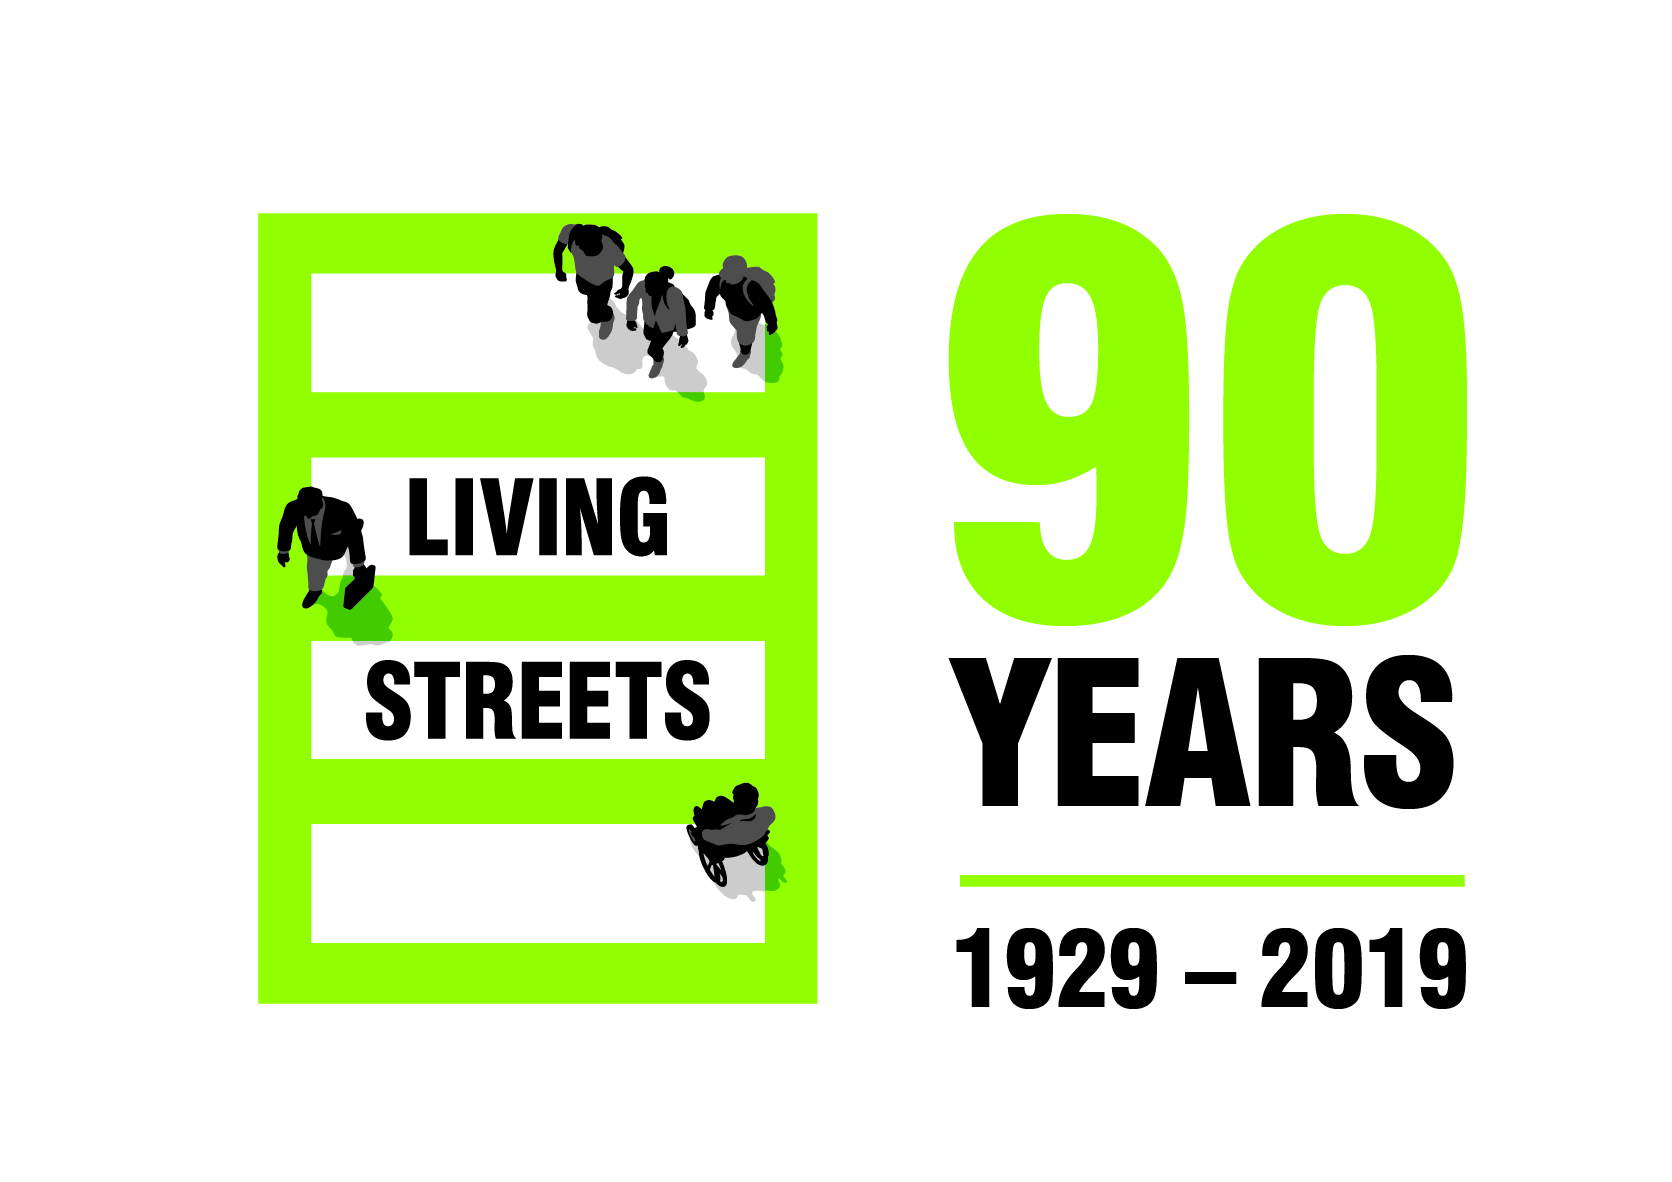 Living Streets is 90